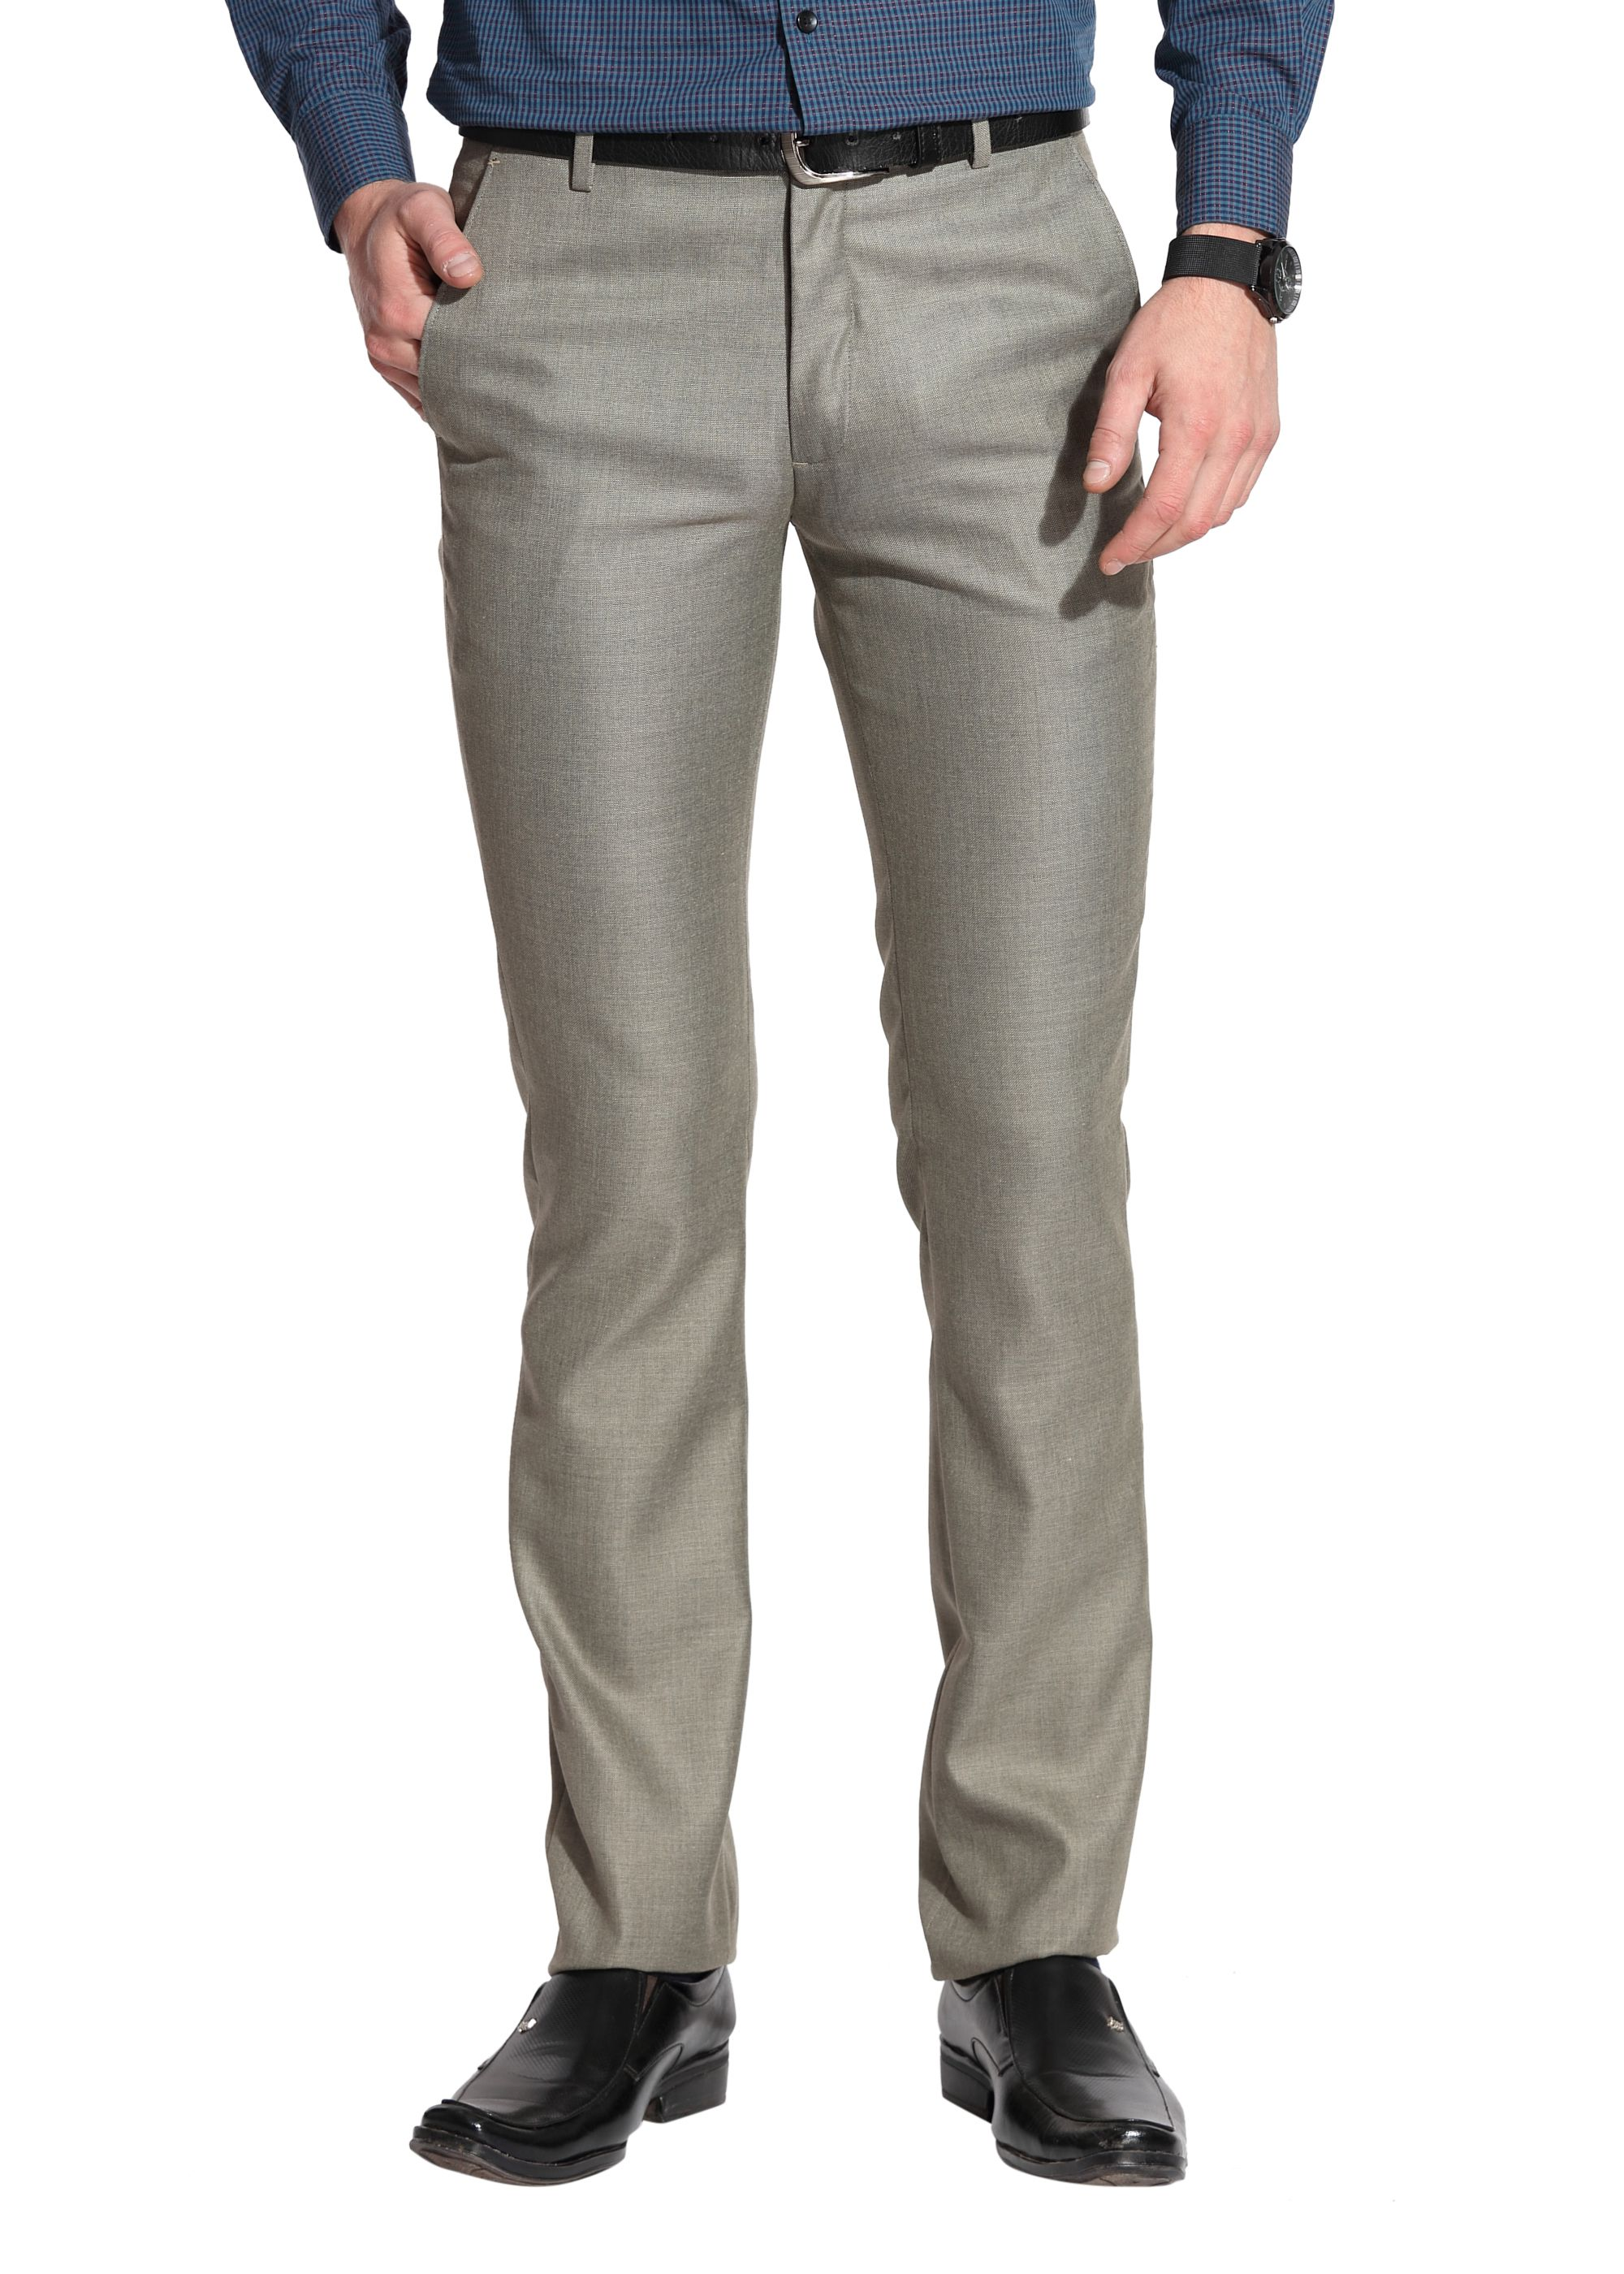 Le Bison Olive Green Slim -Fit Flat Trousers